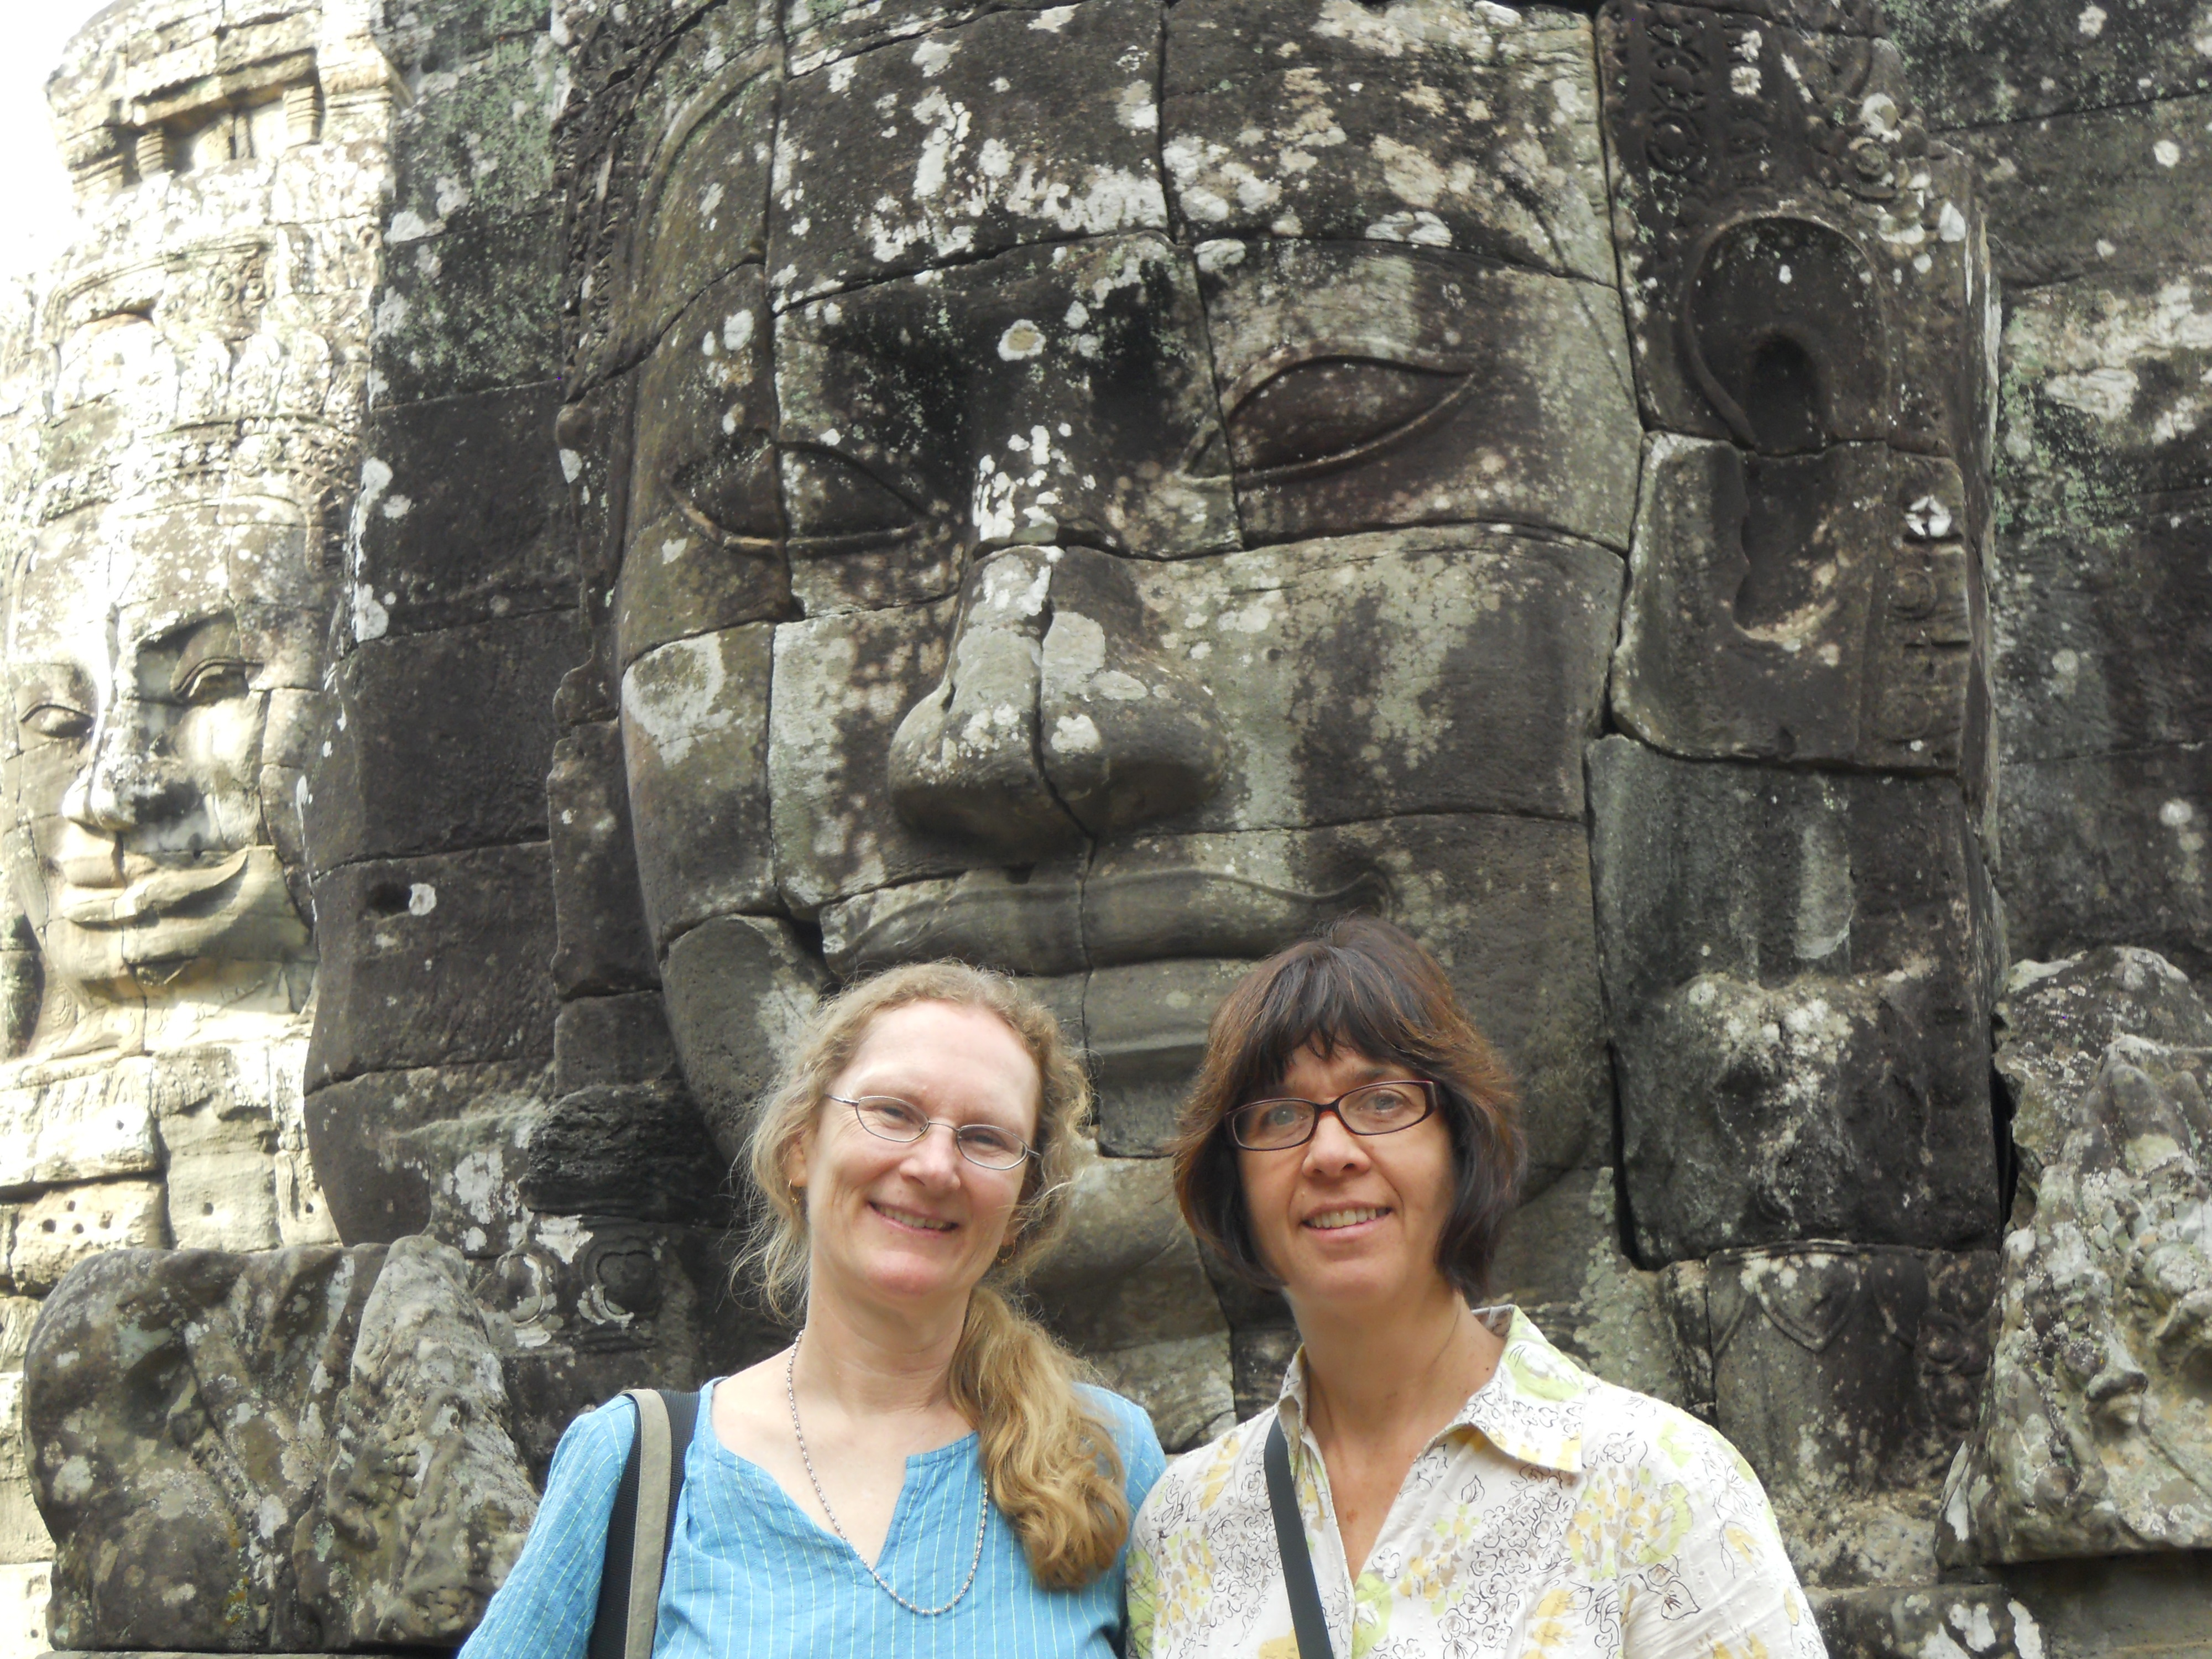 cambodia dating Spending your vacation in cambodia can be a memorable experience with a rich cultural heritage and a different environment for most tourists, it will definitely be a one of a kind vacation, especially when looking for cambodian women.